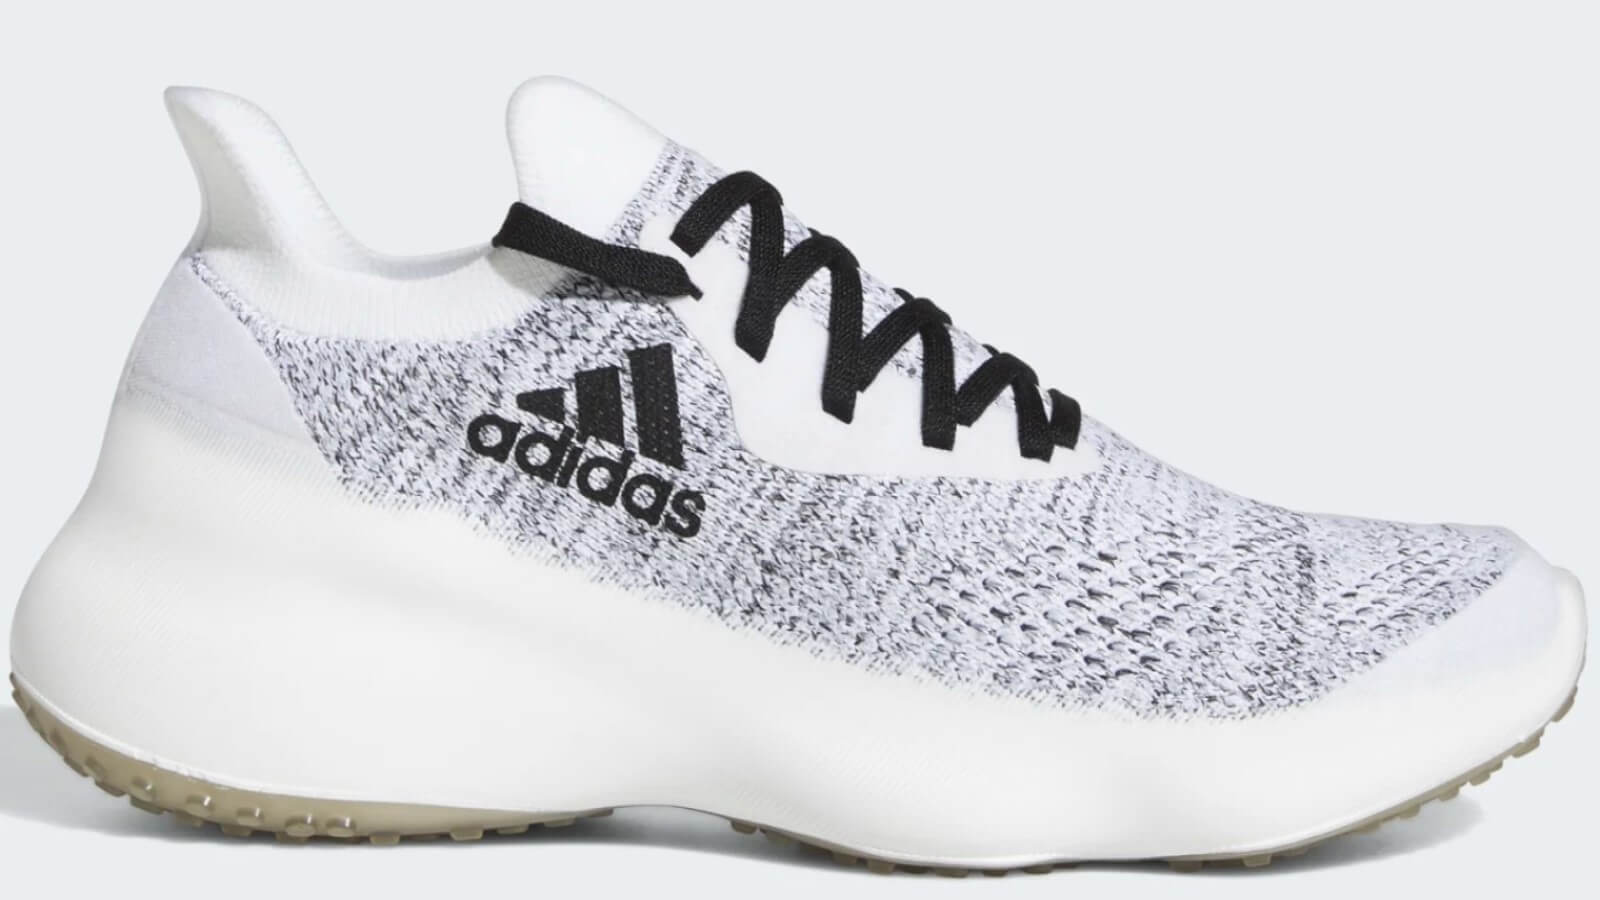 White with black accent profile of Adidas FutureNatural Workout Shoe